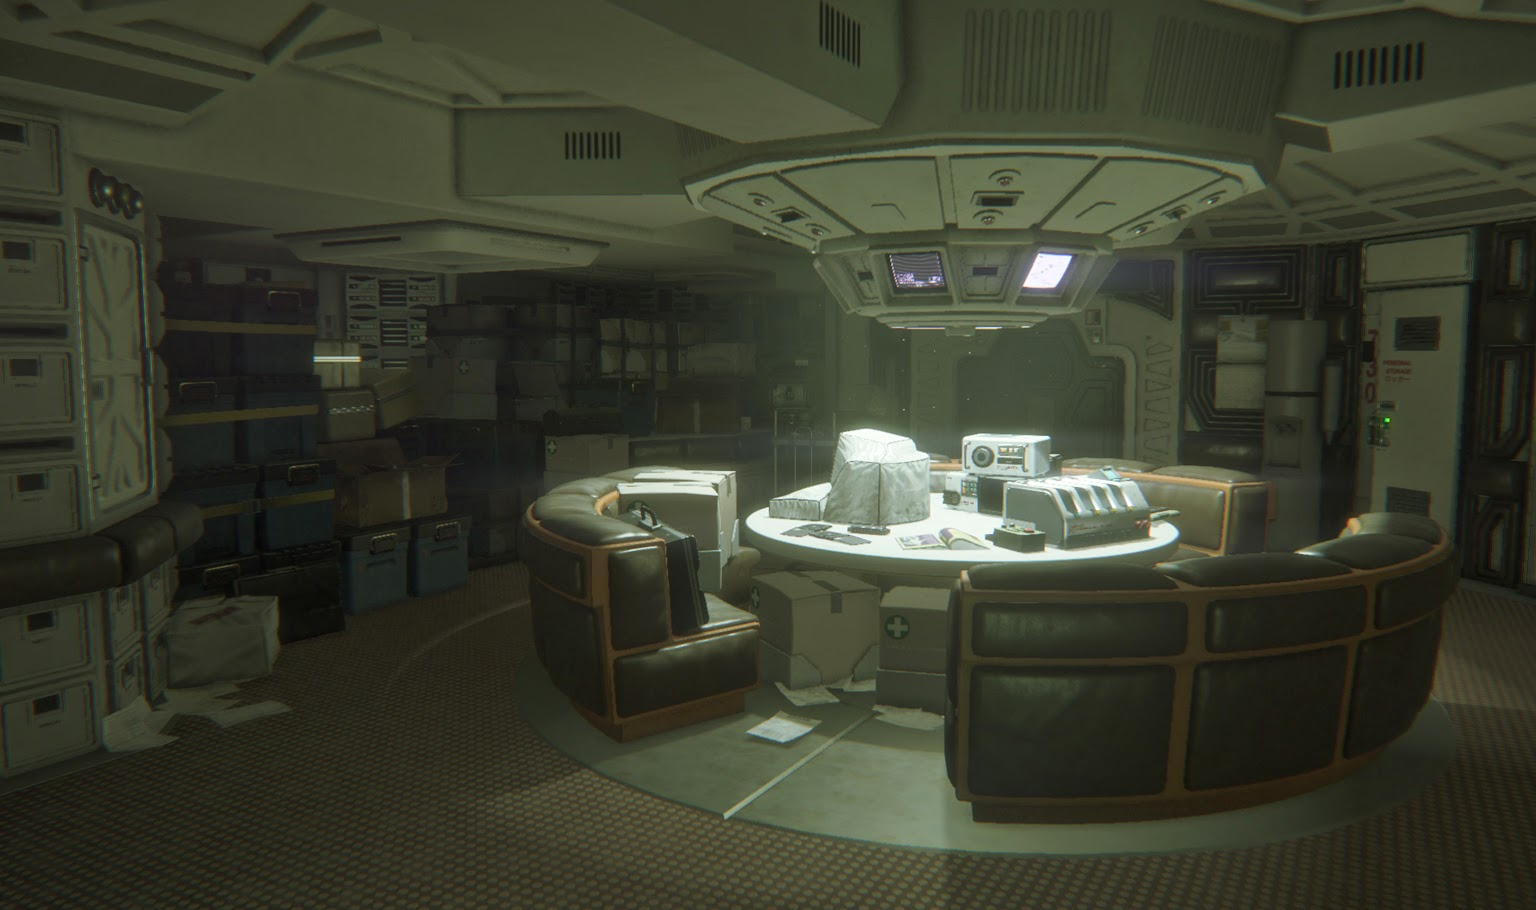 Kelly Ford Alien Isolation Pc Ps4 Xbone Ps3 360 2014